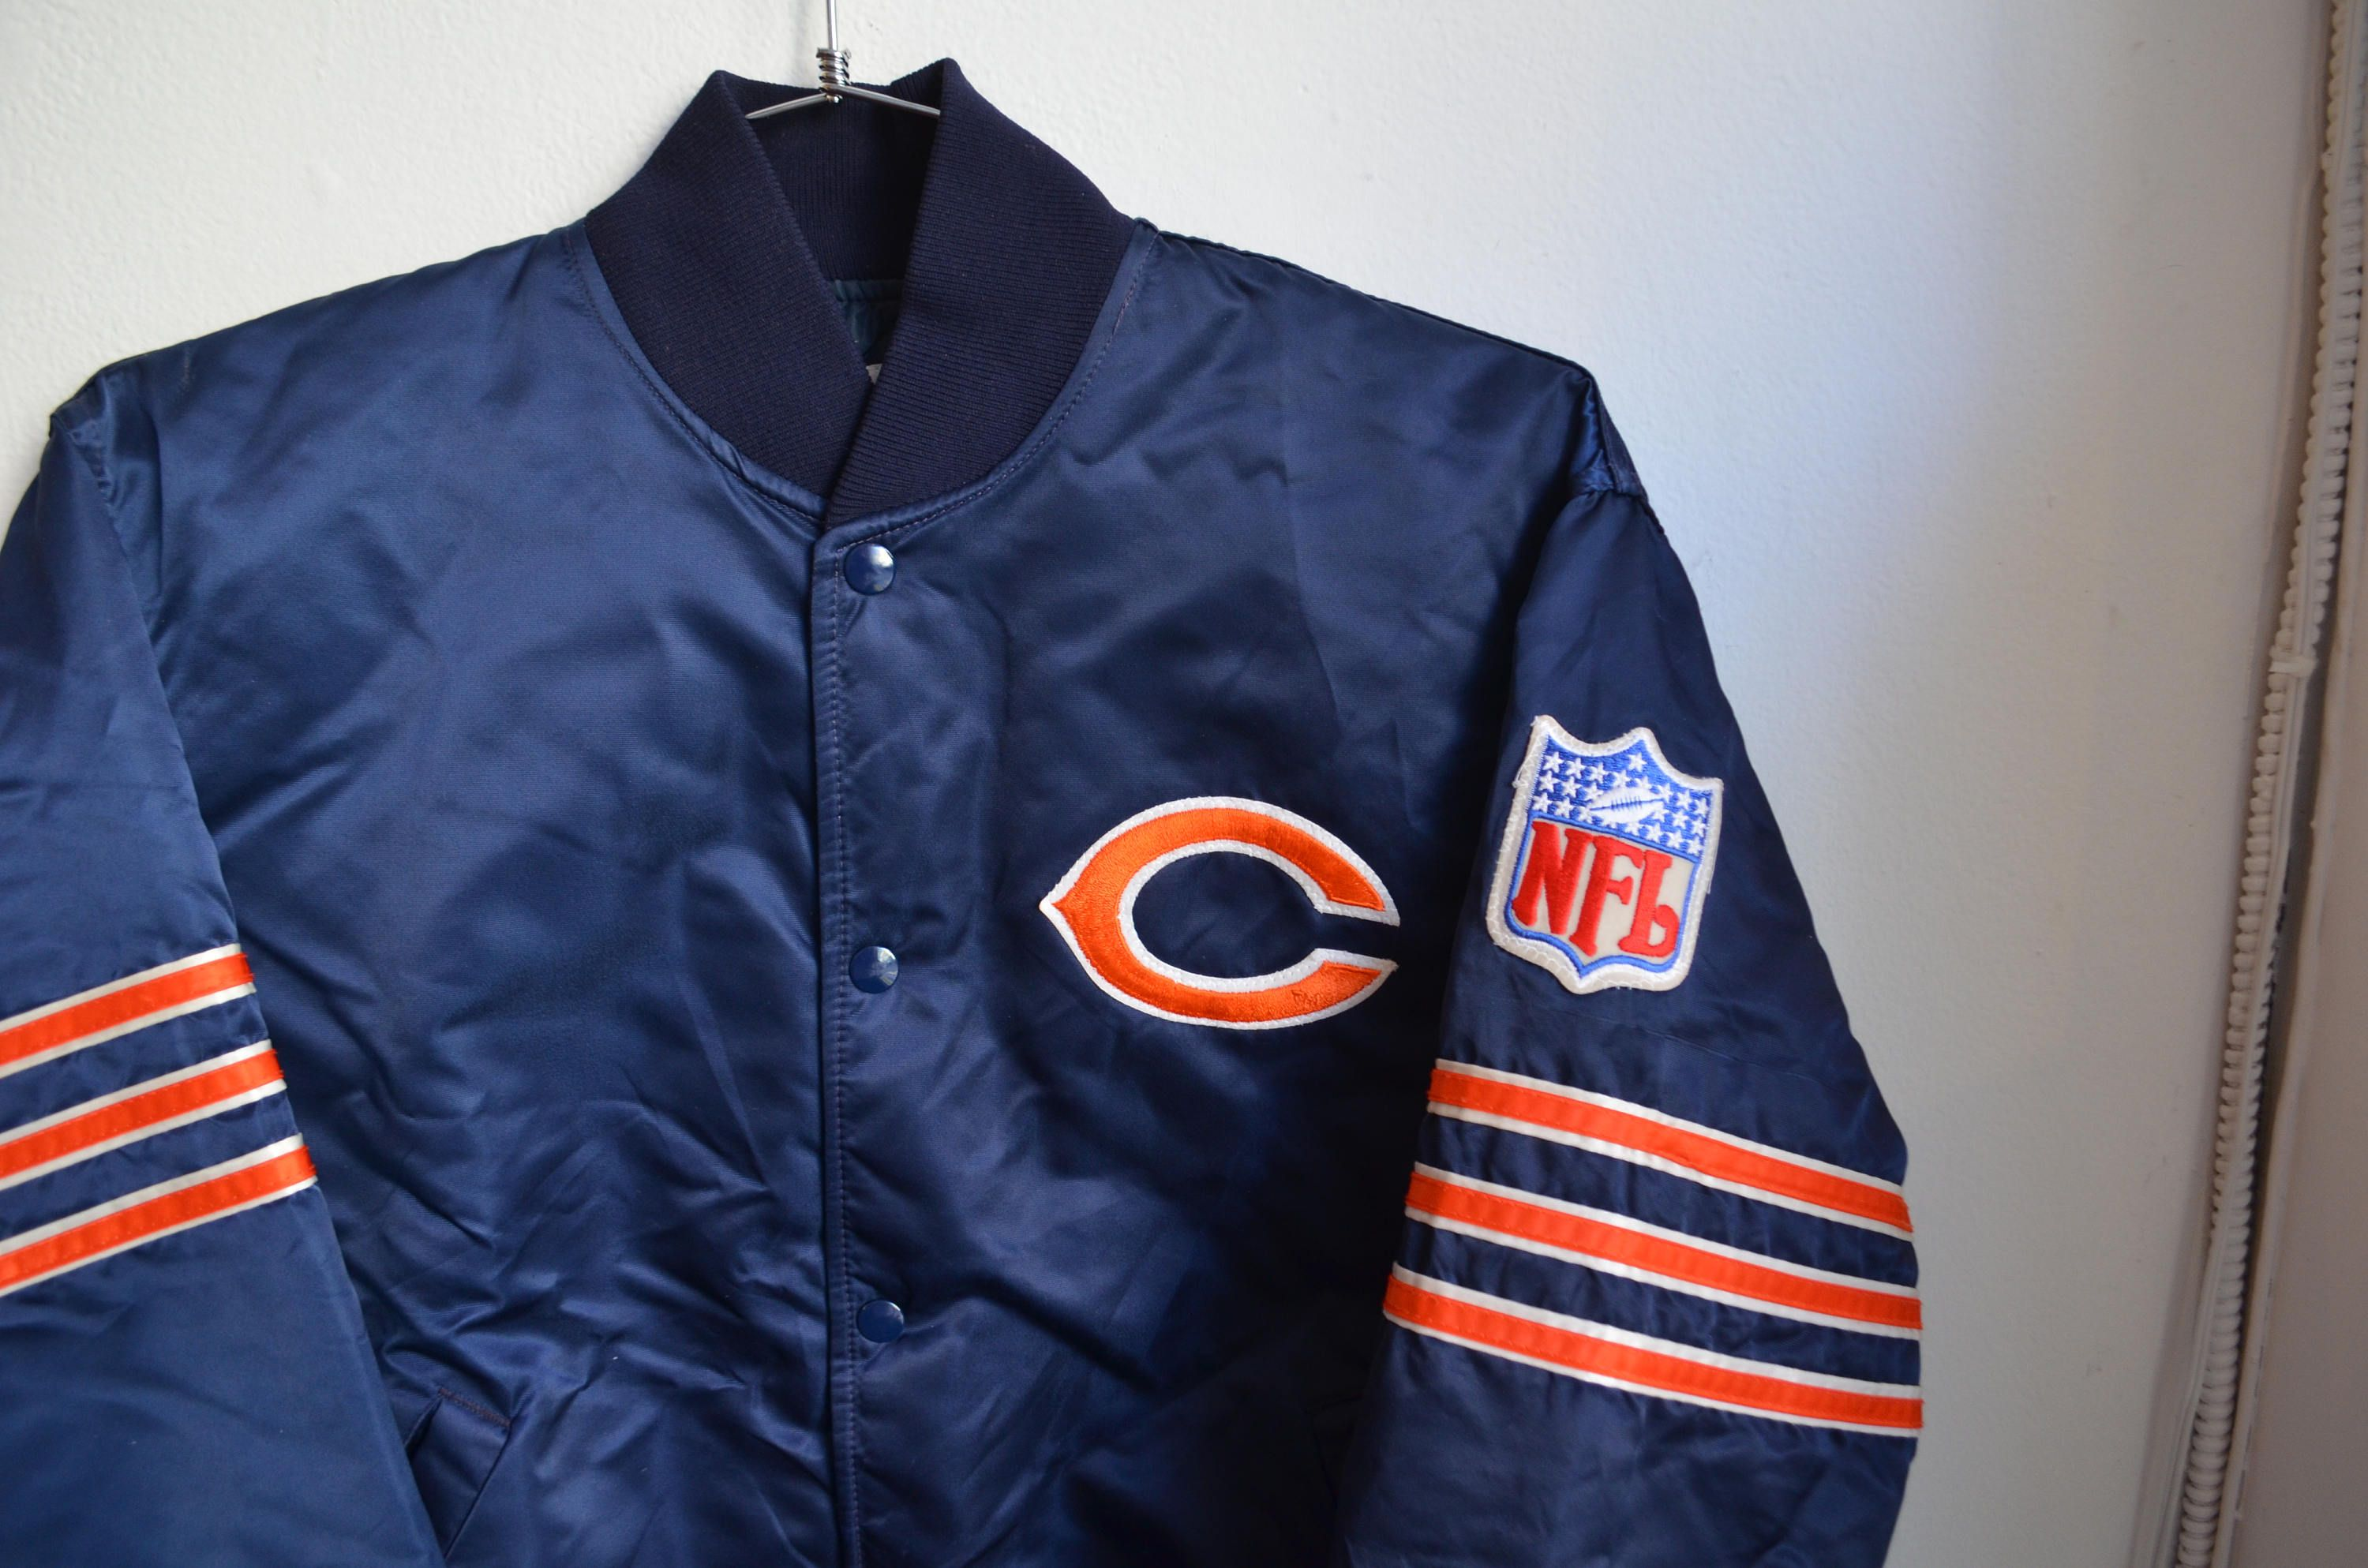 Vintage 80s 90s Starter Chalkline Nfl Football Chicago Bears Etsy Satin Jackets Vintage Outfits Nfl Football